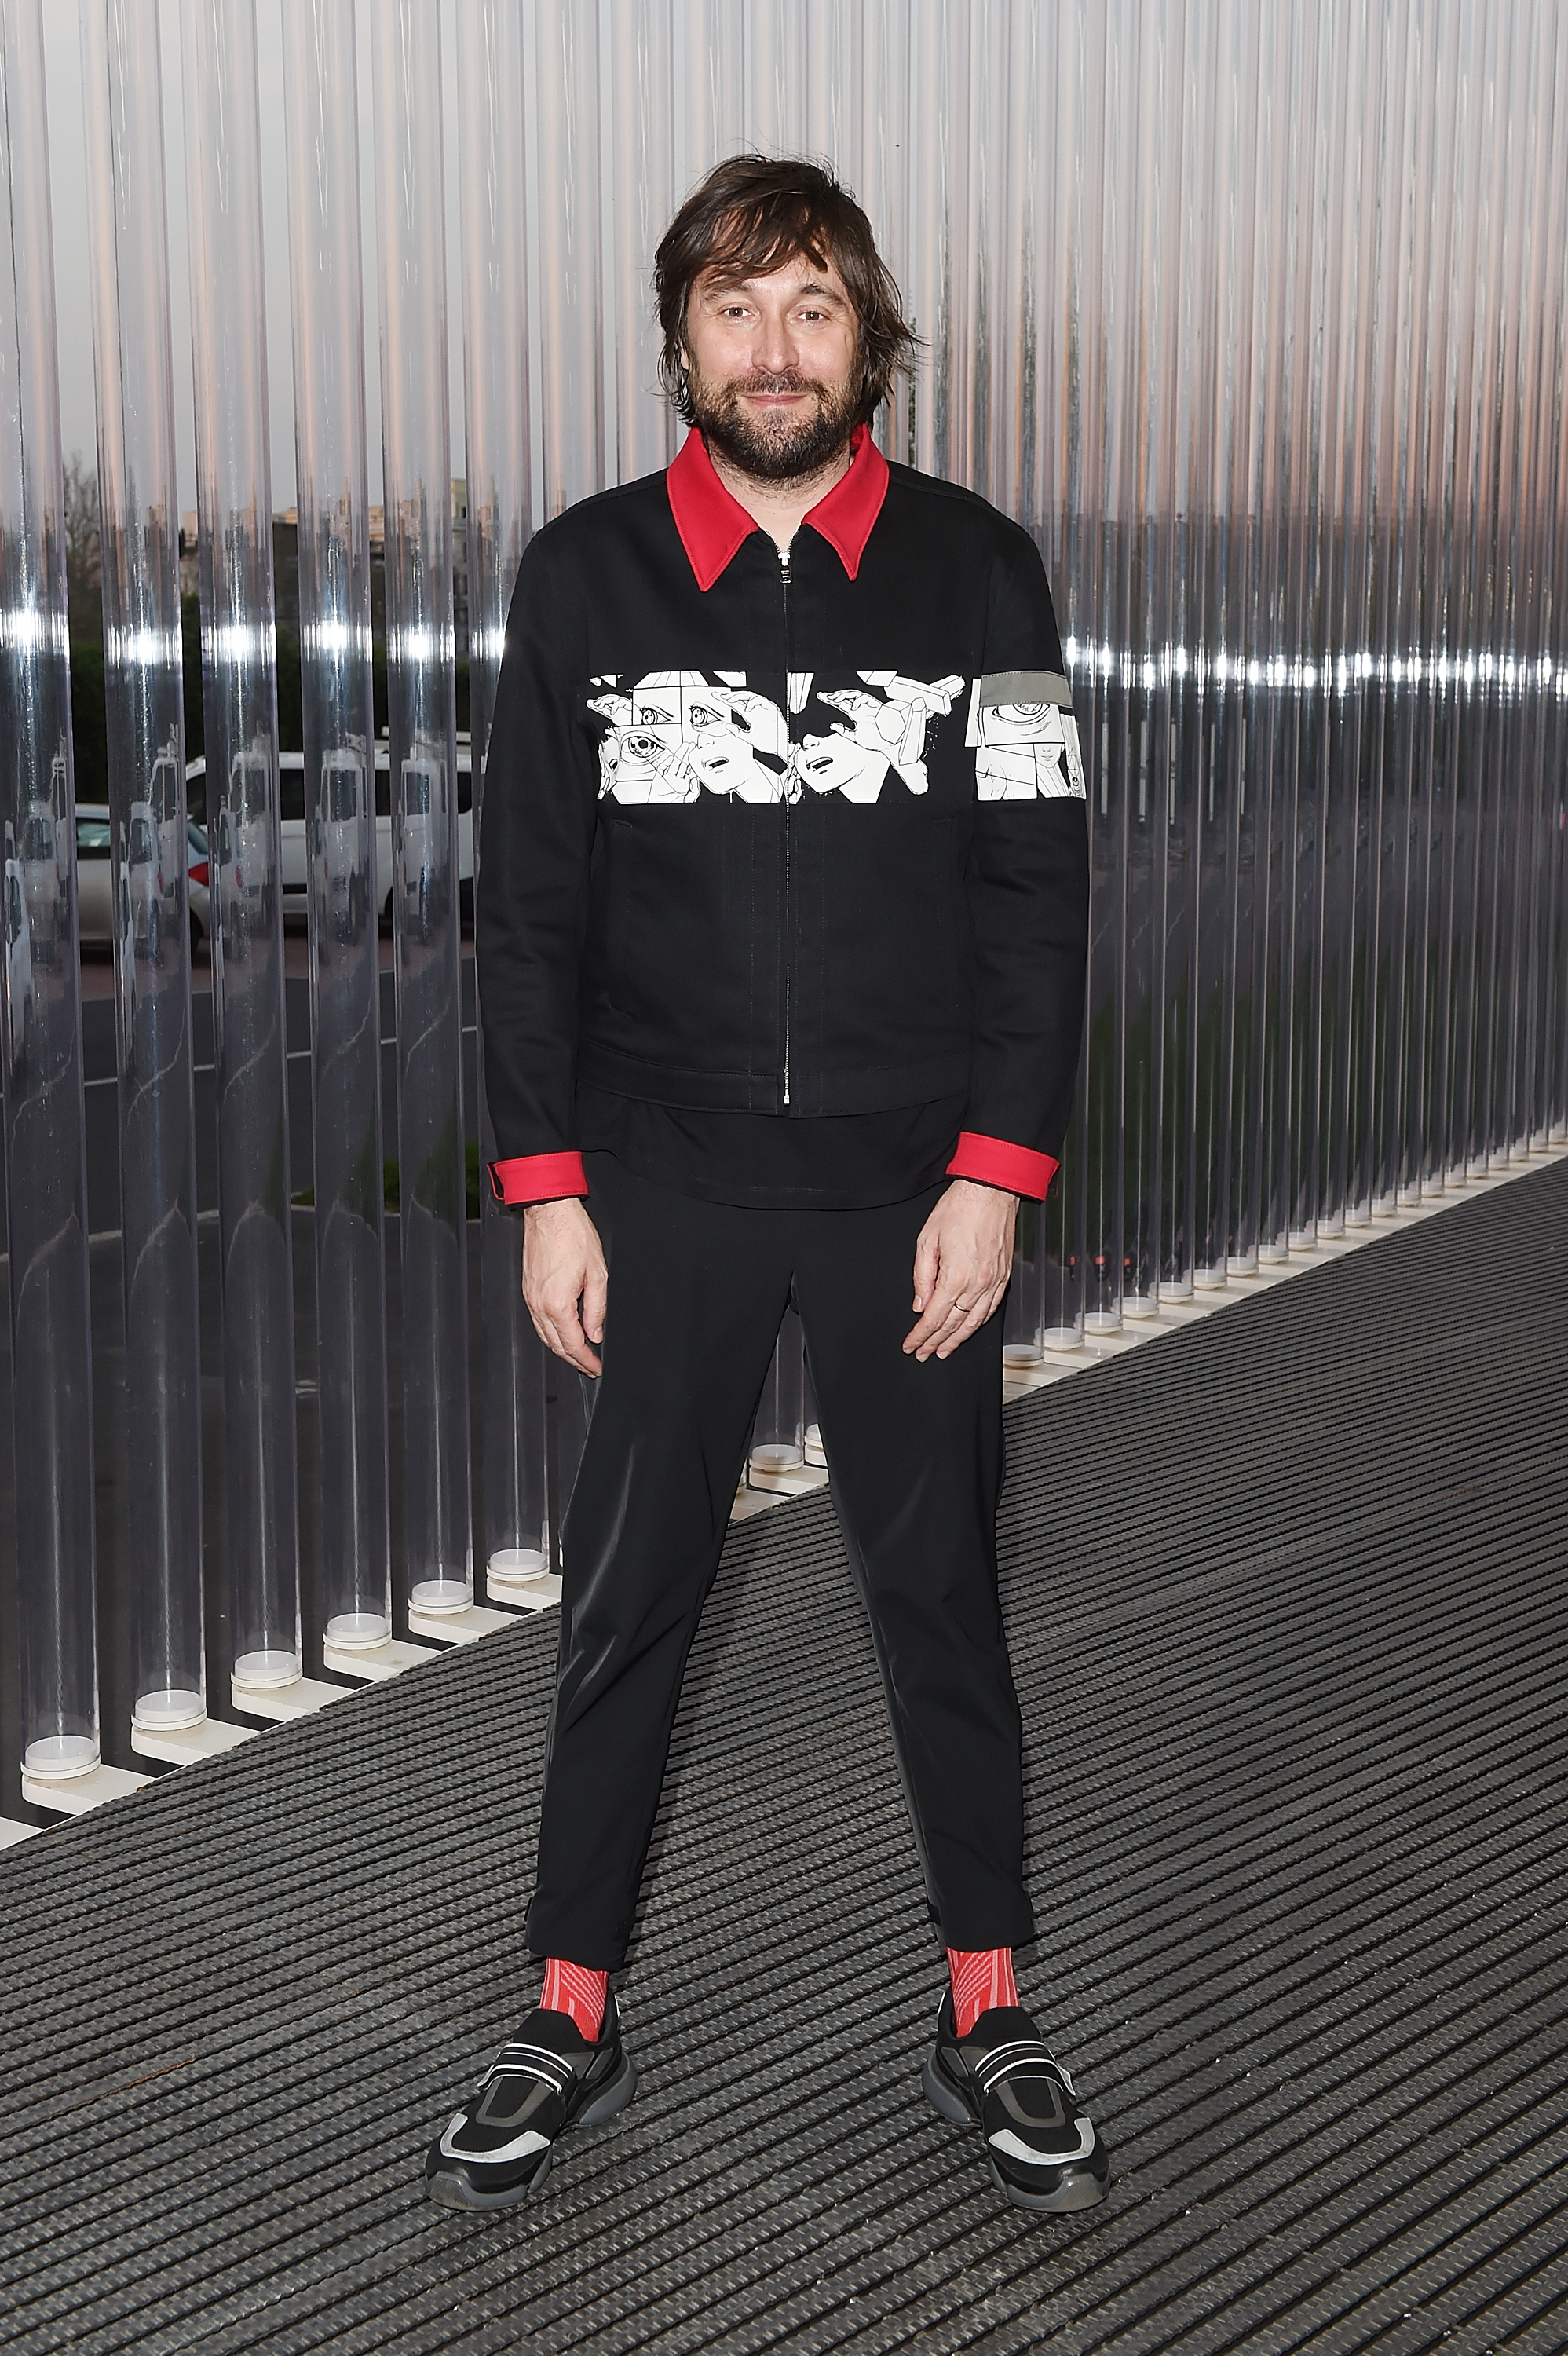 Francesco Vezzoli à l'inauguration de la Torre à la Fondazione Prada le 18 avril 2018 à Milan, Italie. (Photo by Stefania M. D'Alessandro/Getty Images for Fondazione Prada)